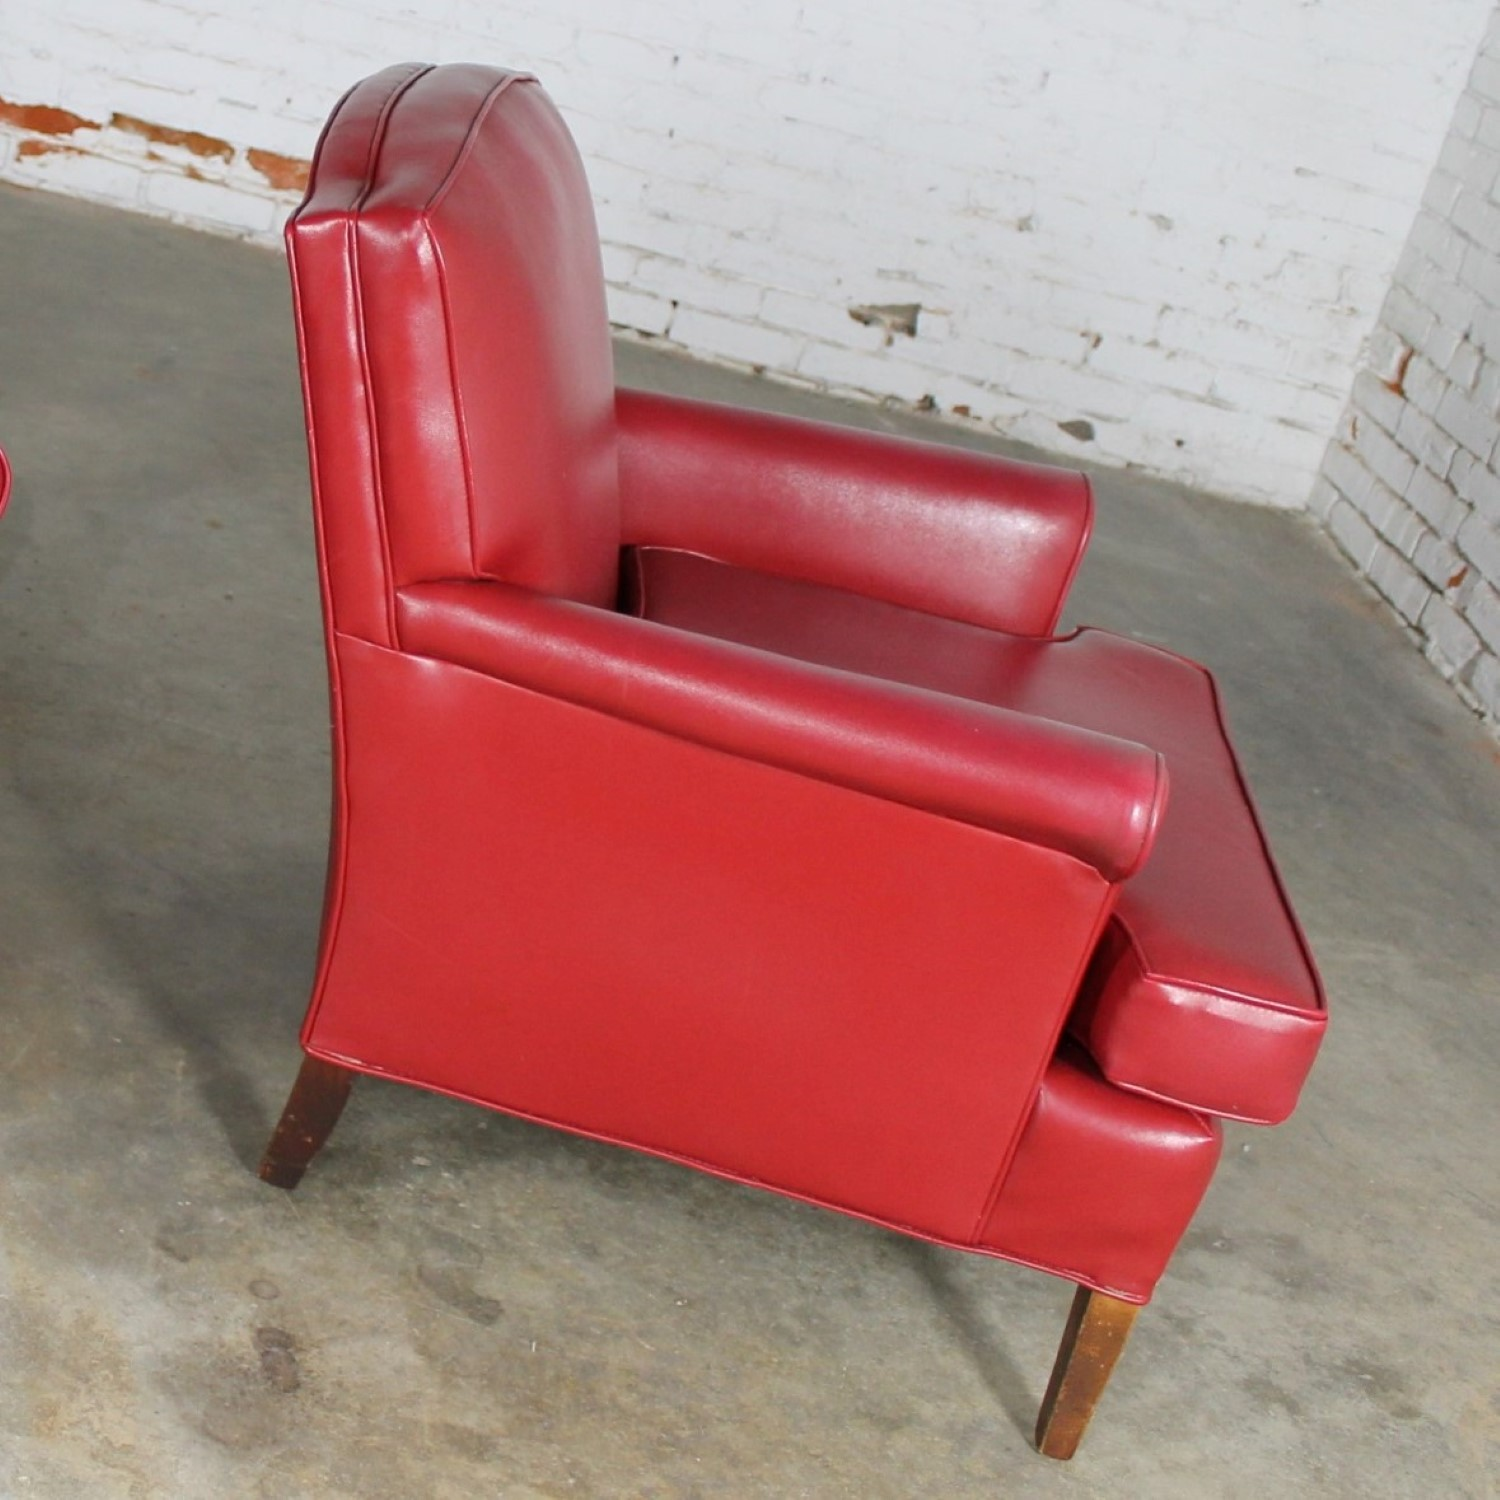 Vintage 1940s Red Vinyl Club Chairs A Pair Warehouse 414